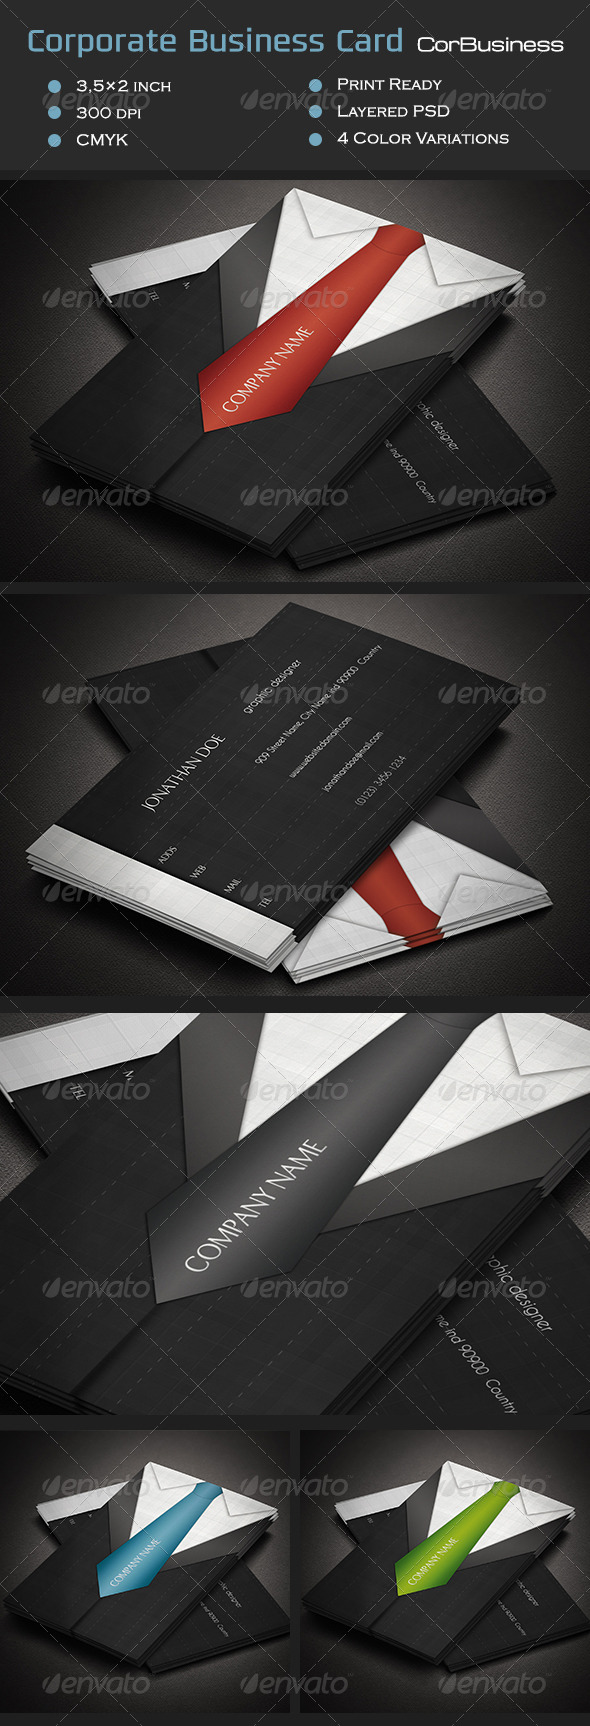 Corporate Business Card CorBusiness - Corporate Business Cards